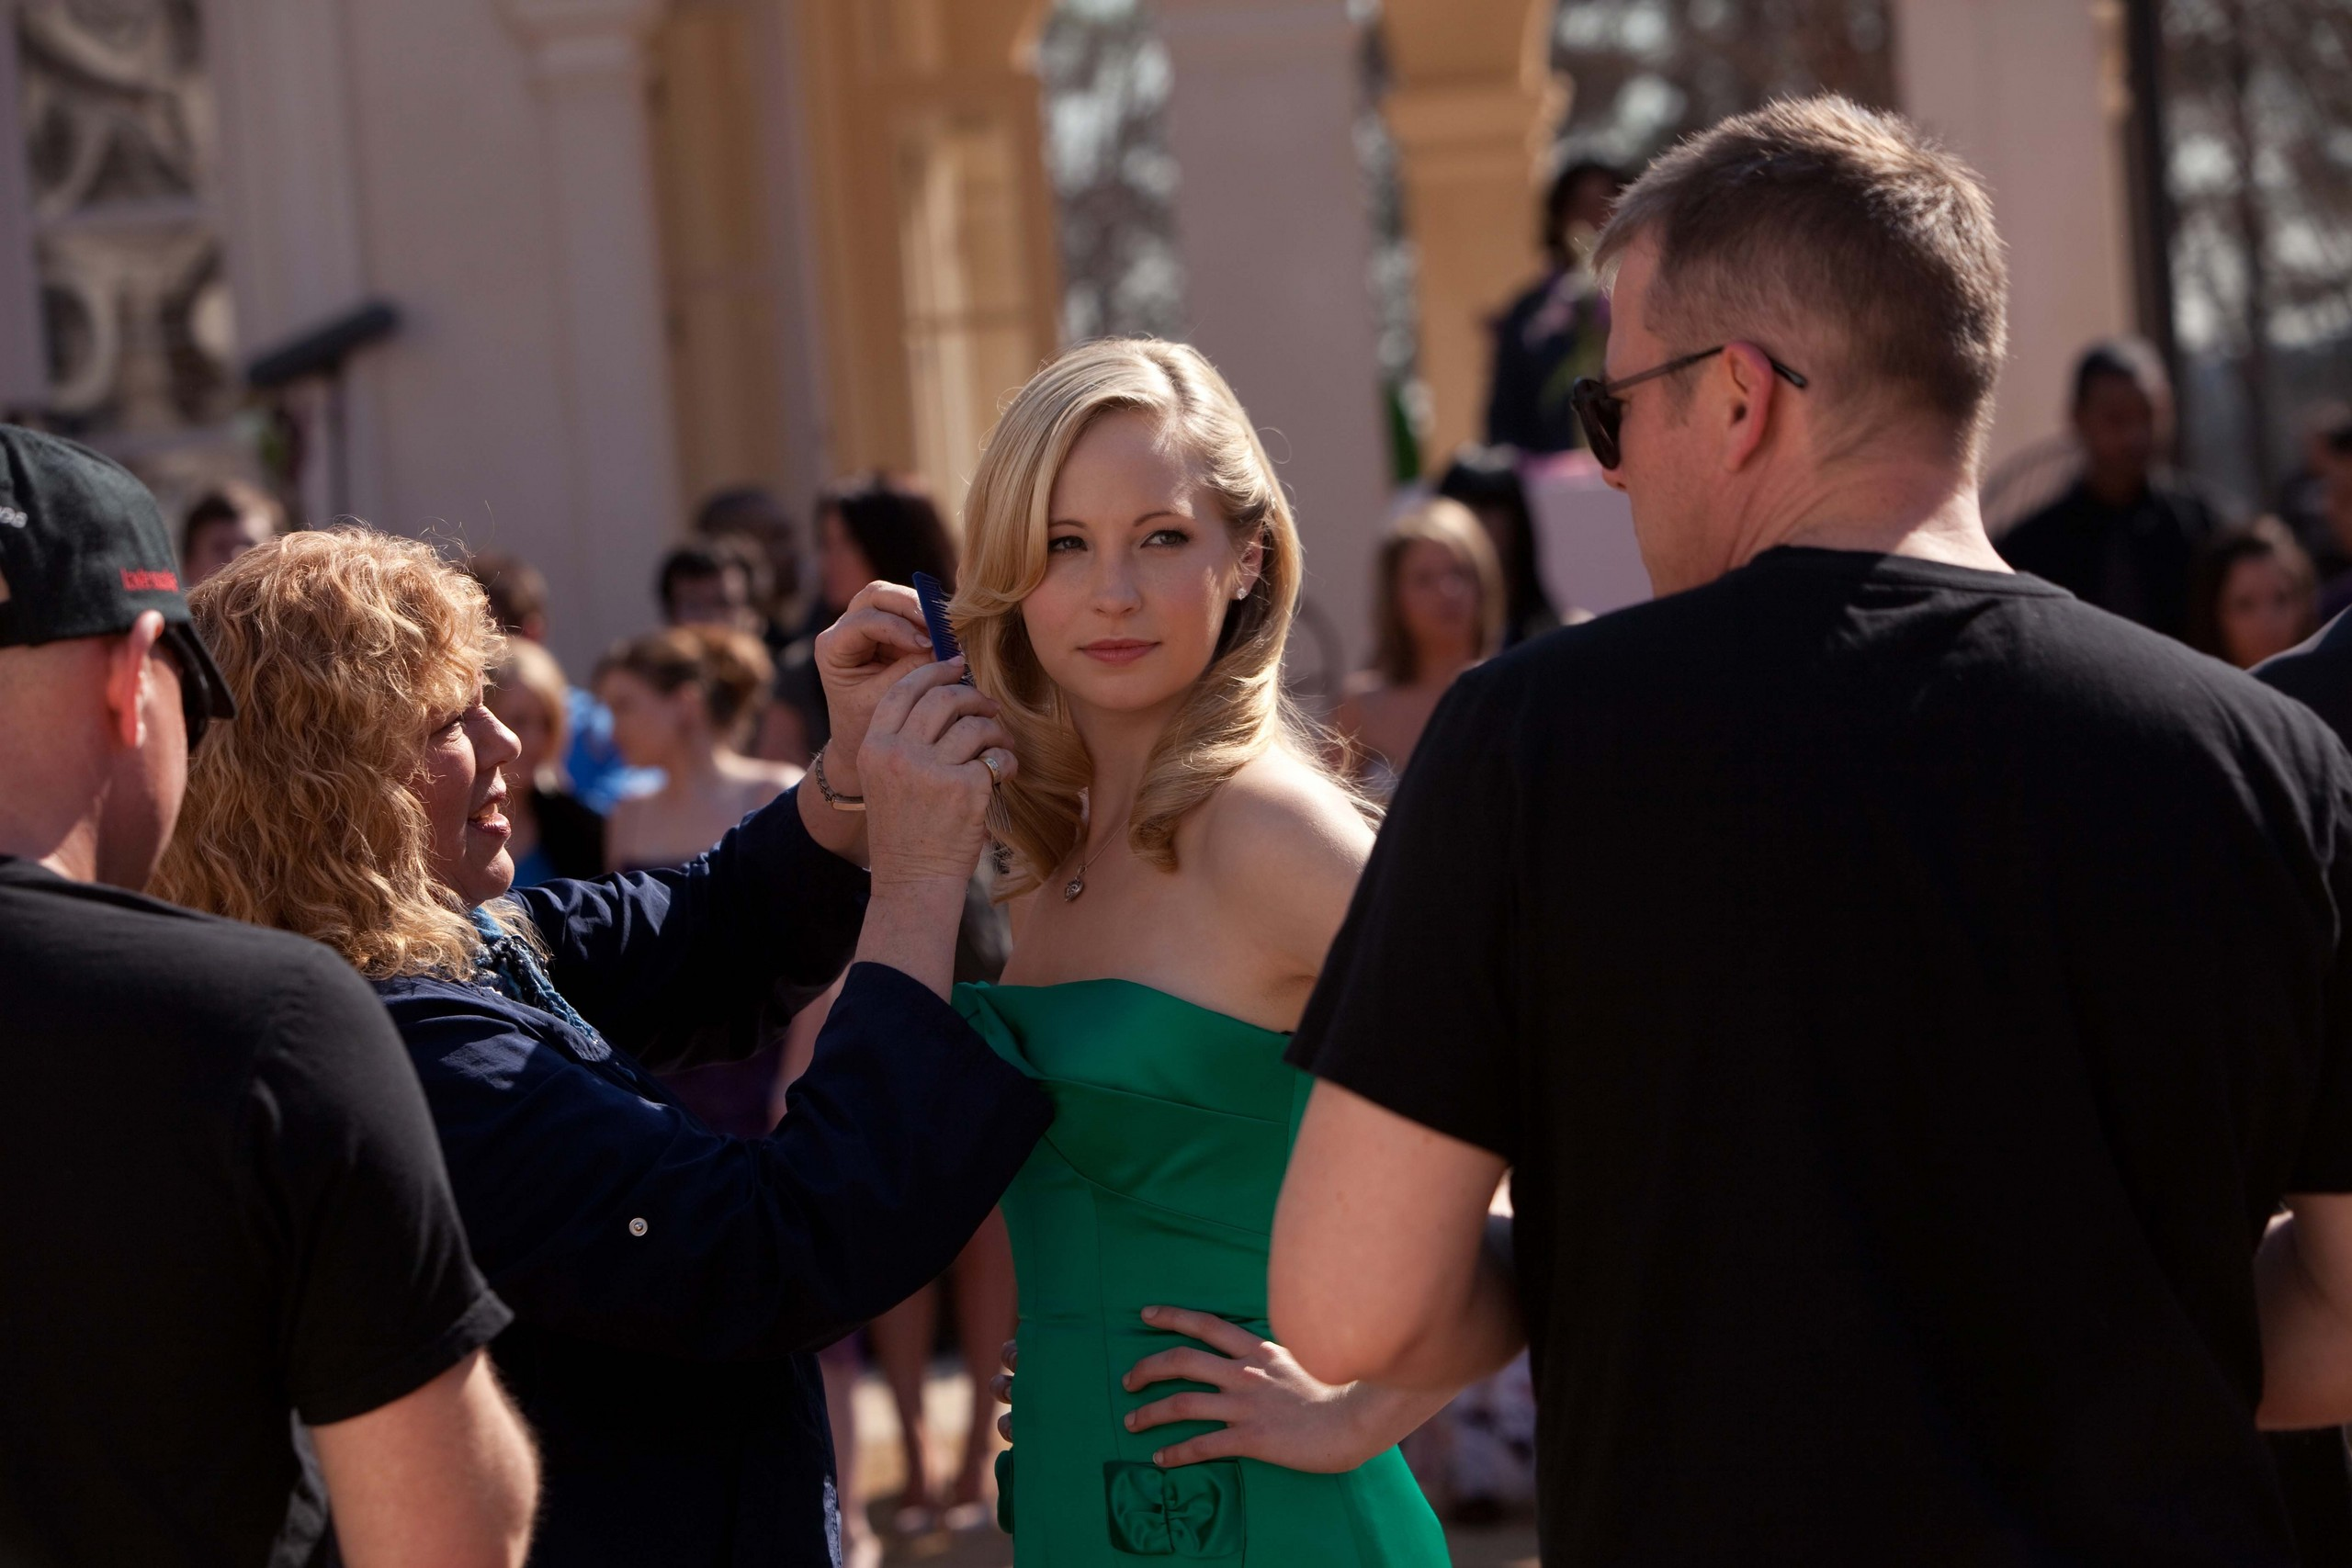 New HQ TVD BTS Stills of Candice as Caroline (1x19: Miss Mystic Falls)!